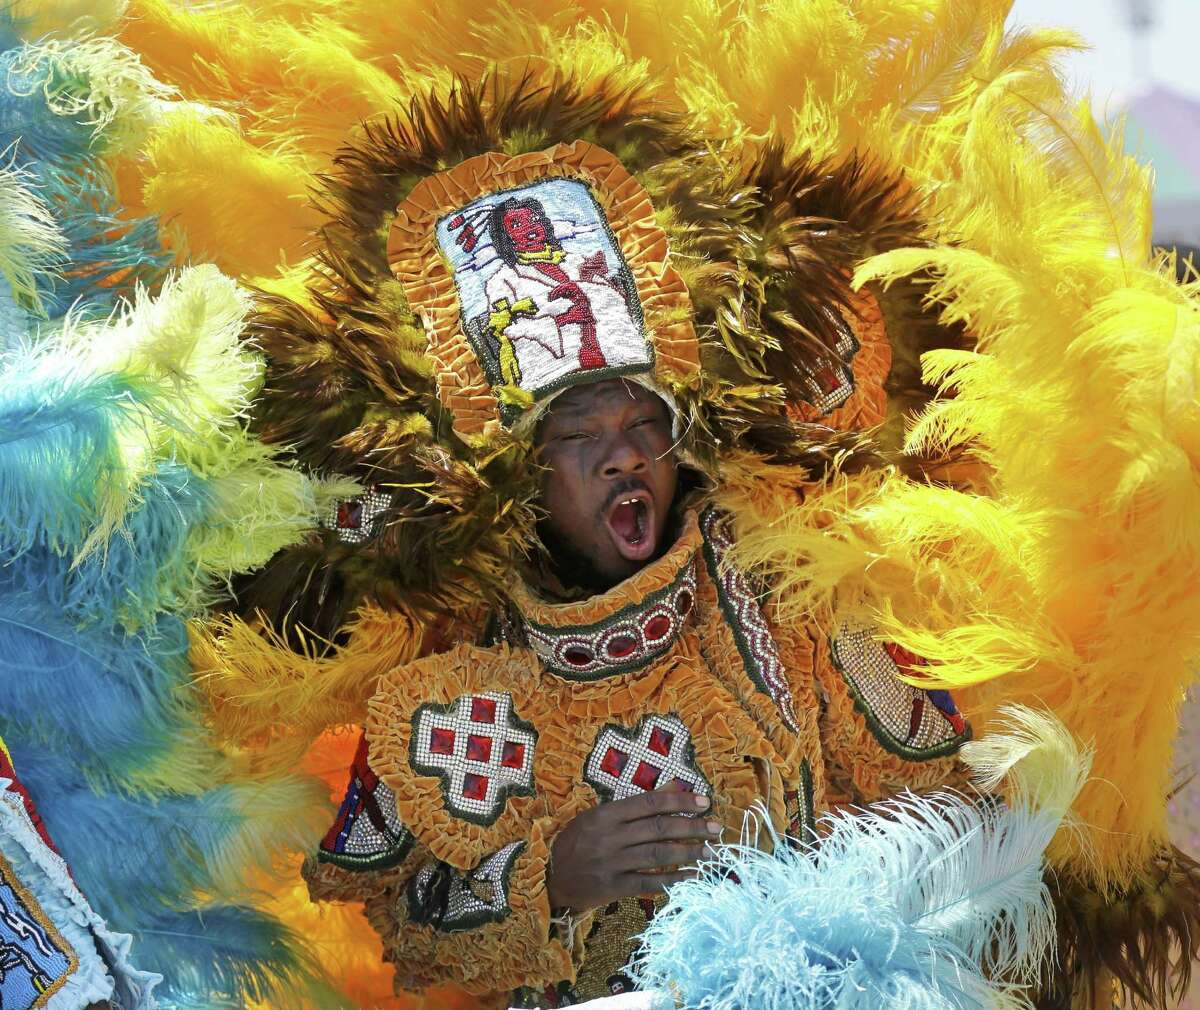 FILE - In this file photo, Members of the New Orleans Mardi Gras Indian Rhythm Section, with the Algiers Warriors and Golden Comanche Mardi Gras Indians, march in a second line parade at the New Orleans Jazz and Heritage Festival in New Orleans, Friday, May 1, 2015. The 47th annual festival features top artists covering many genres of music from jazz to rock to Zydeco to rap to pop to R&B and gospel. The gates to the Fair Grounds Race Track, where the festival is held, open at 11 a.m. The music on 11 stages starts shortly thereafter. (AP Photo/Gerald Herbert, File) ORG XMIT: LAGH207